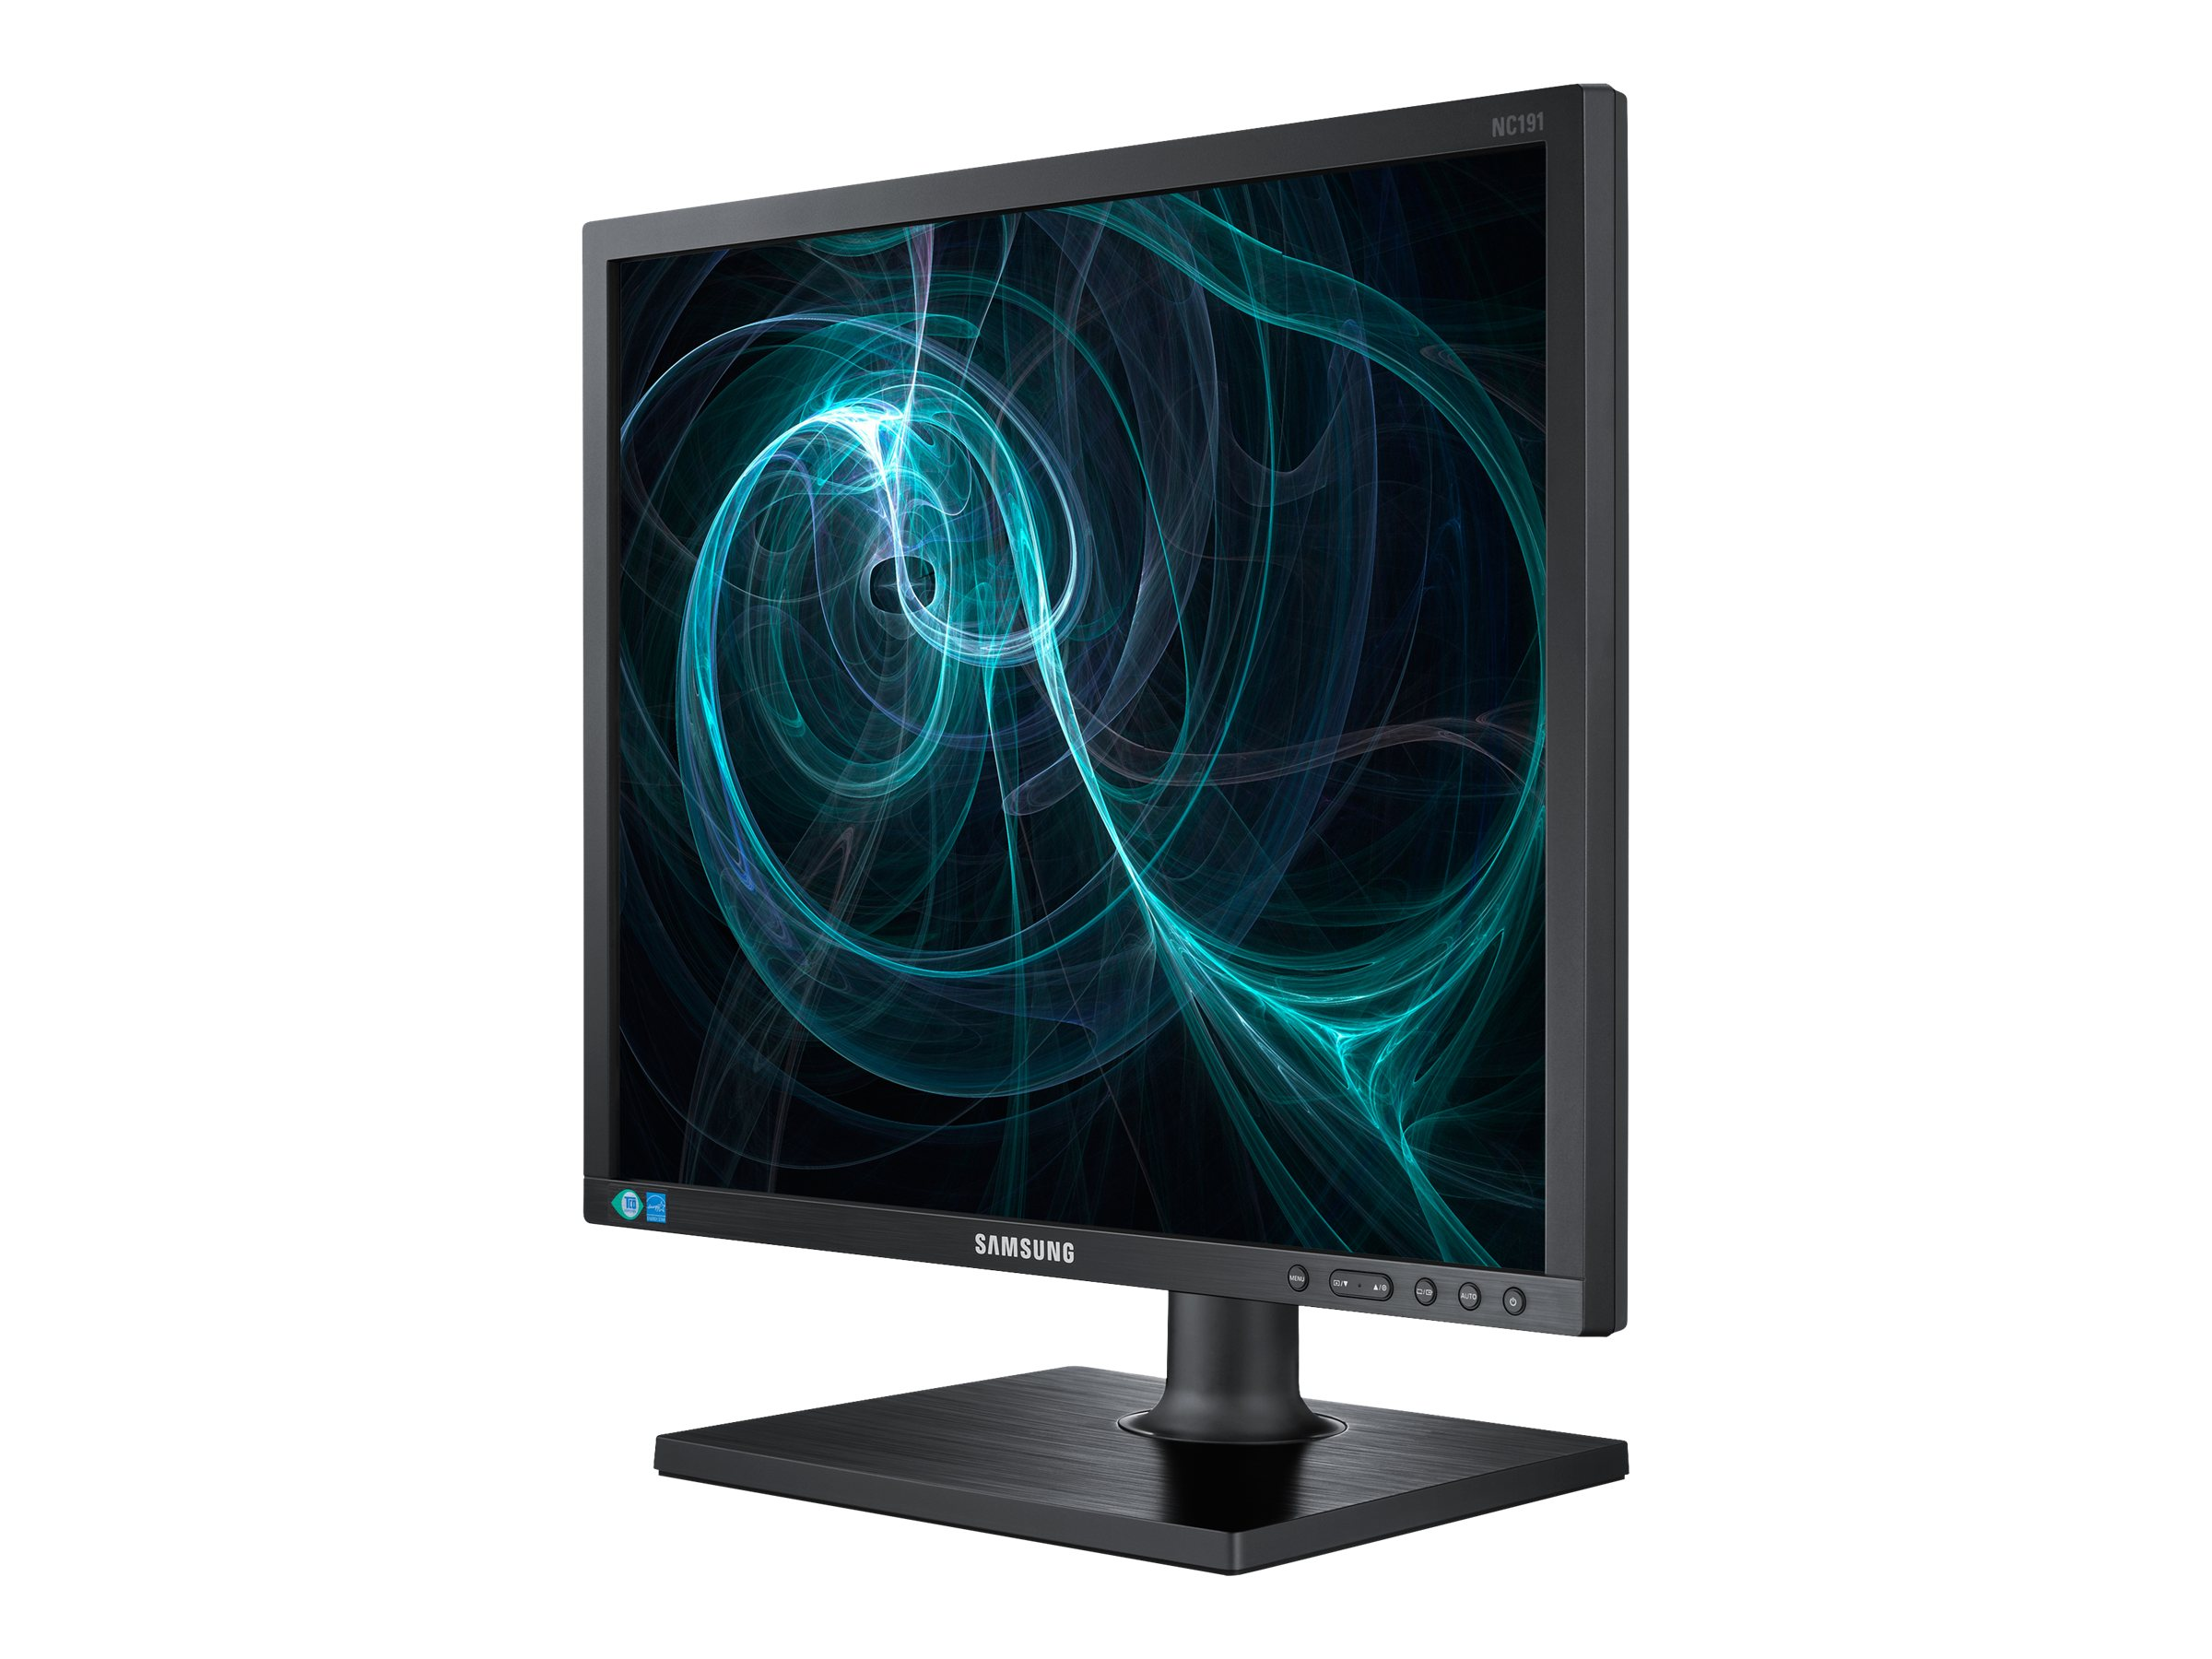 Samsung 19 NC191 Zero Client LED-LCD Monitor, Black